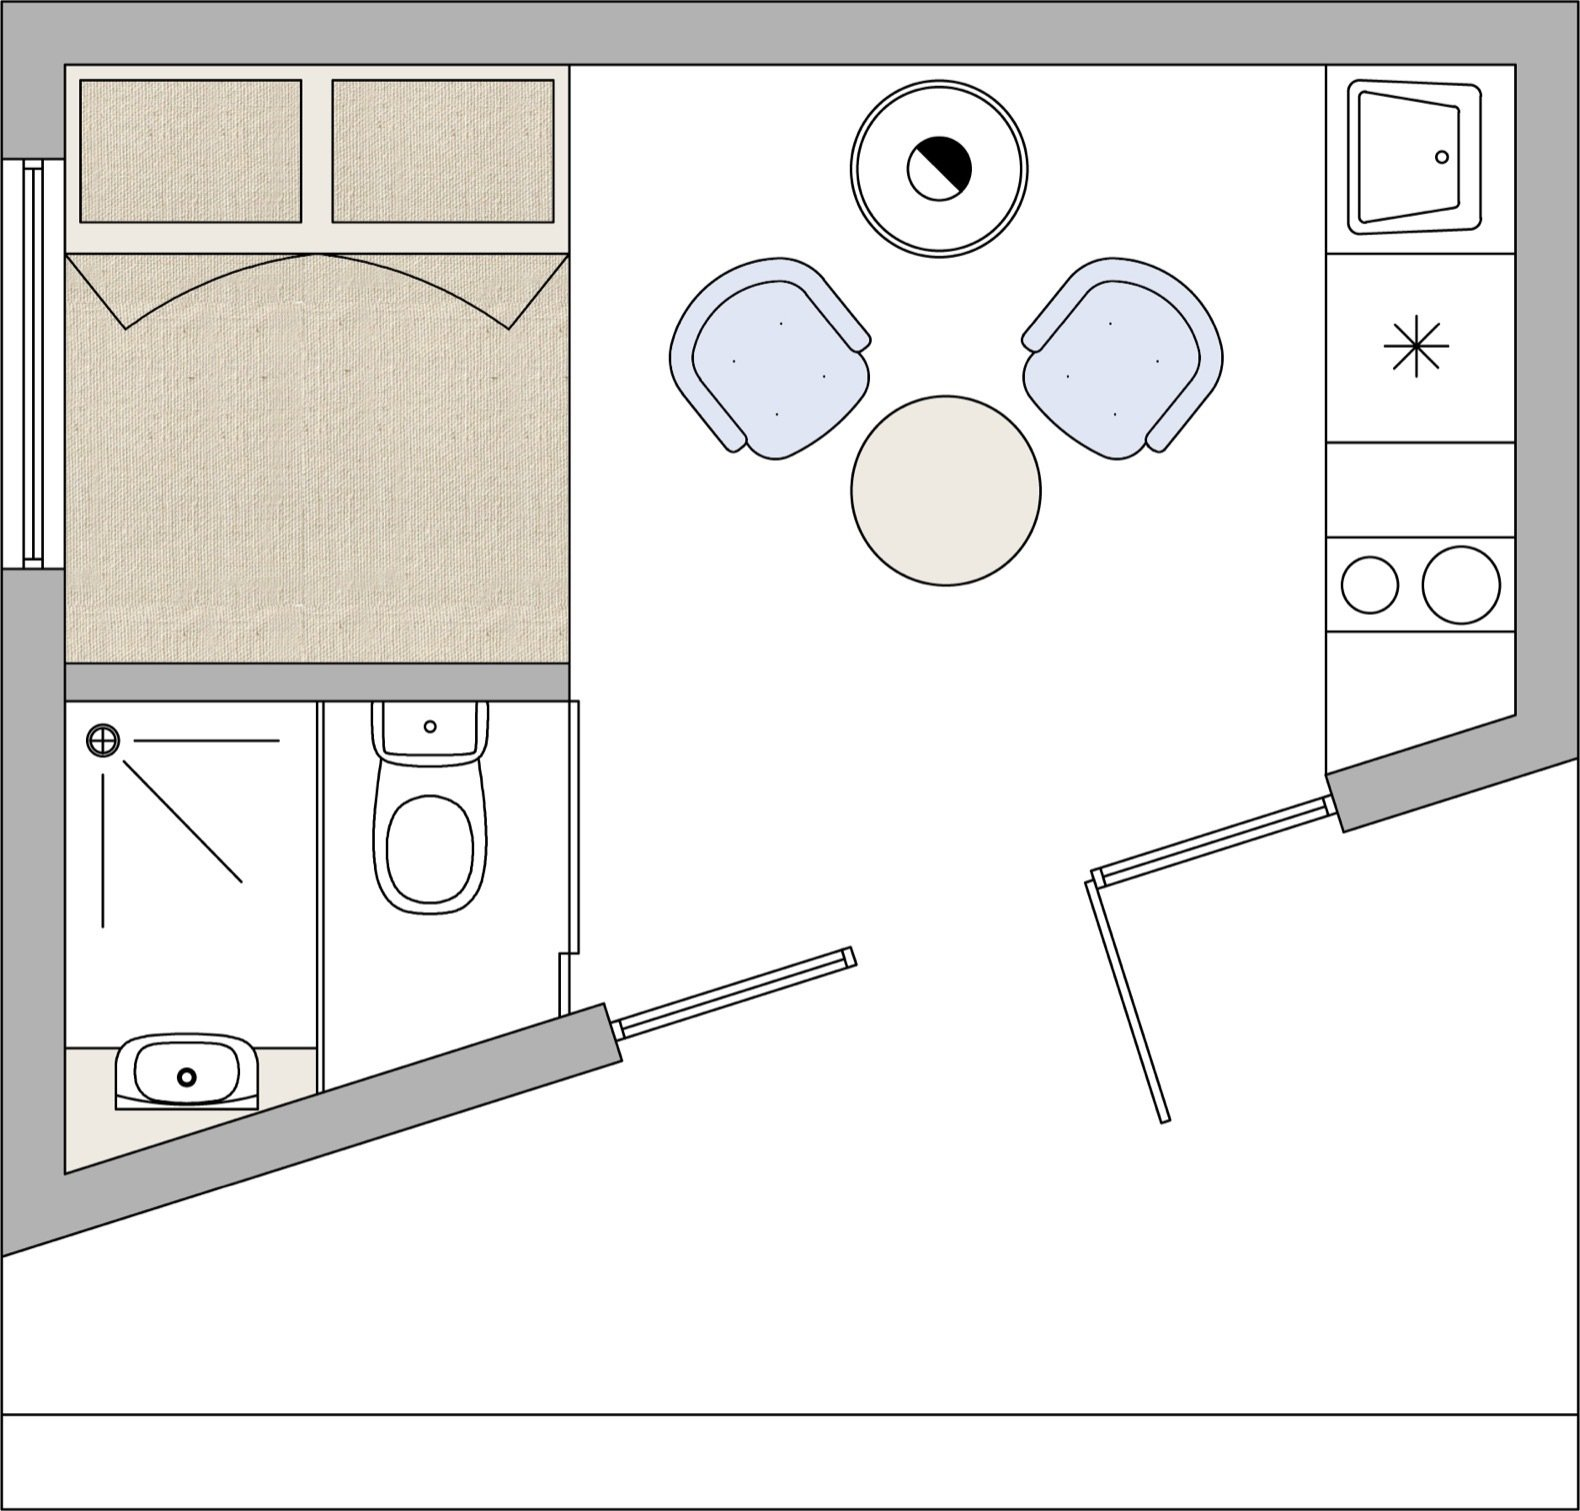 Etno Hut floor plan.   Photo 11 of 11 in Mingle With Mother Nature in This Tiny Prefab Getaway